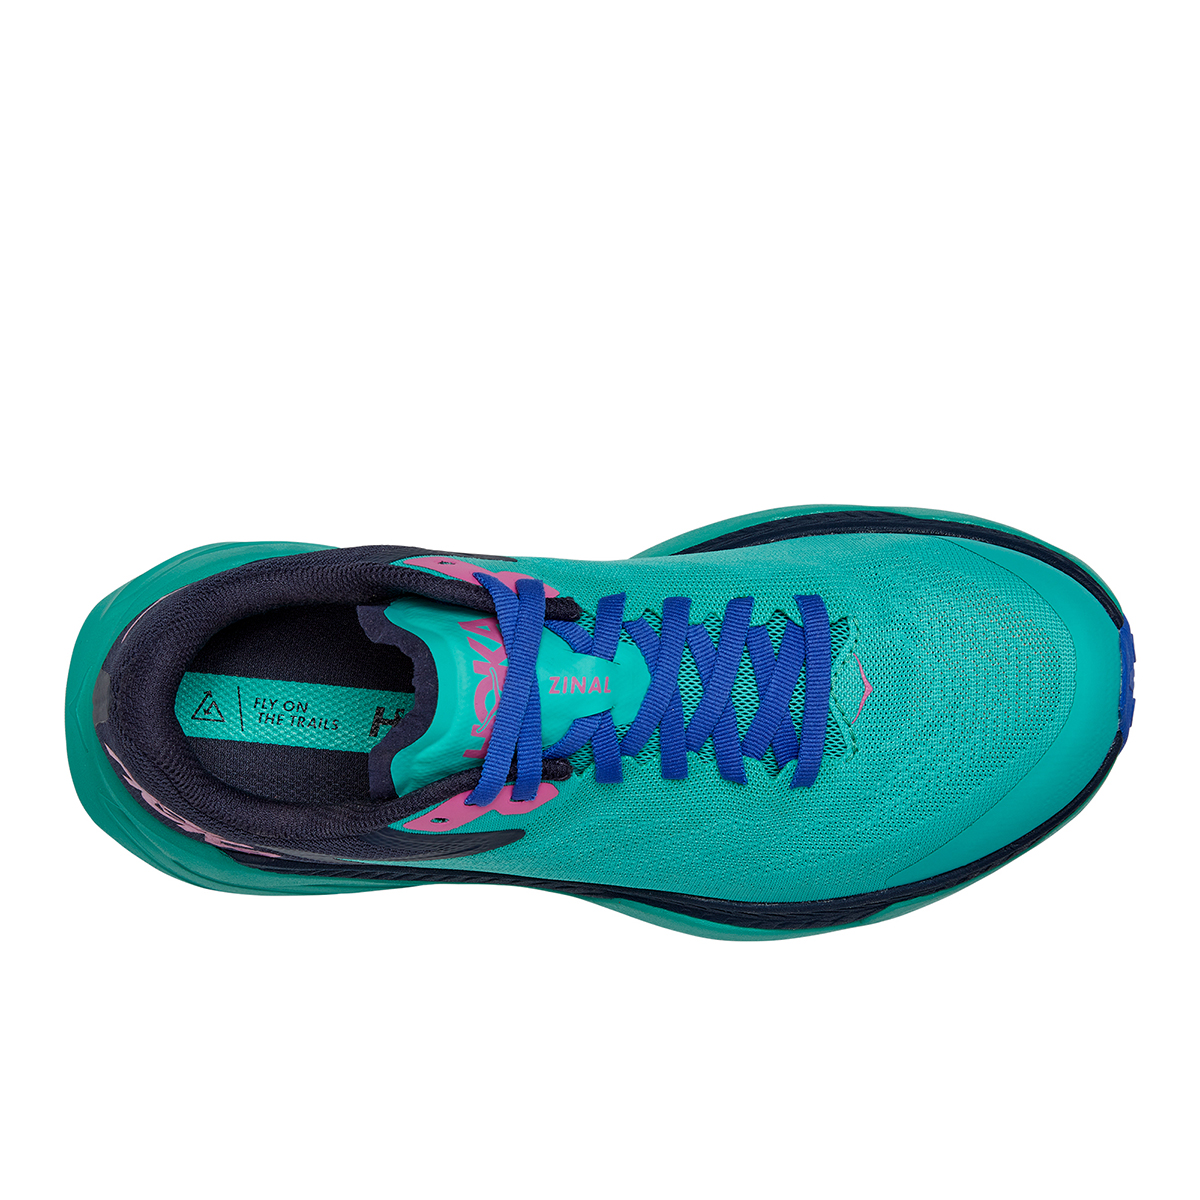 Women's Hoka One One Zinal Trail Running Shoe - Color: Atlantis / Outer Space - Size: 5 - Width: Regular, Atlantis / Outer Space, large, image 3